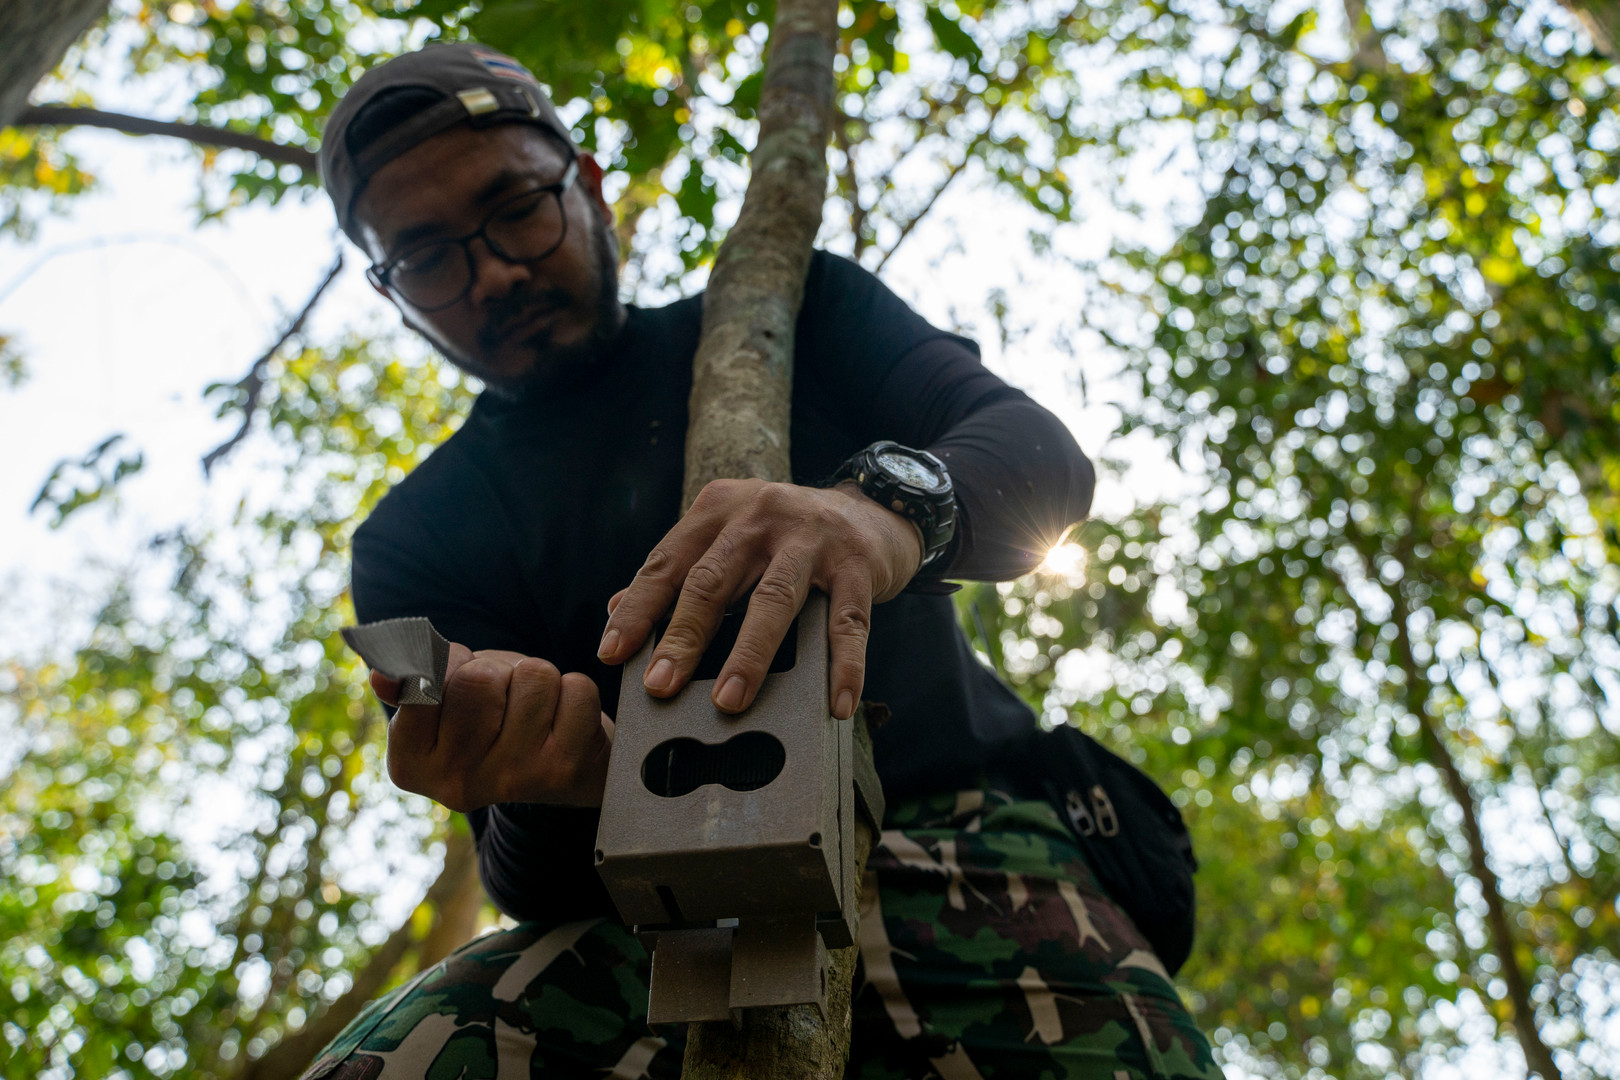 Wittaya Tueaktao prepares a camera trap along a trail commonly used by wildlife near the Khao Ban Dai research station in Huai Kha Khaeng. Camera trapping teams typically spend a month in the field, broken up into stretches lasting an average of 3-5 days at a time, followed by a week off.